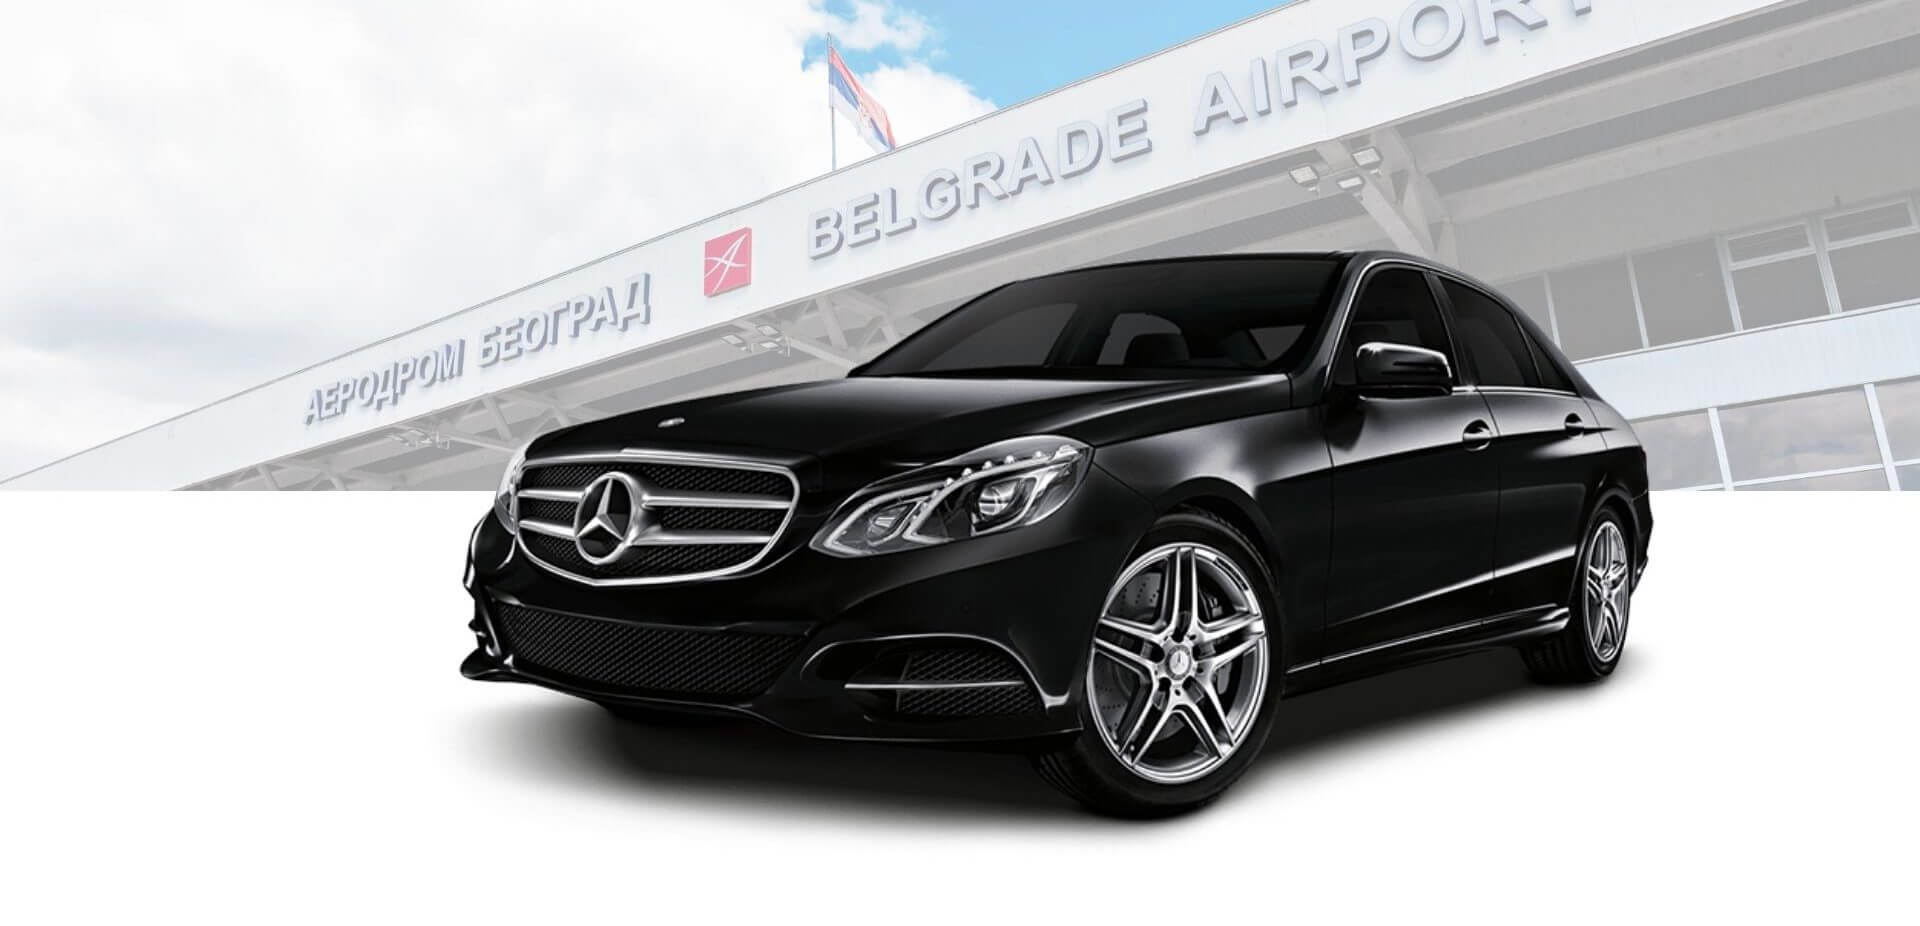 Private transfer and airport taxi